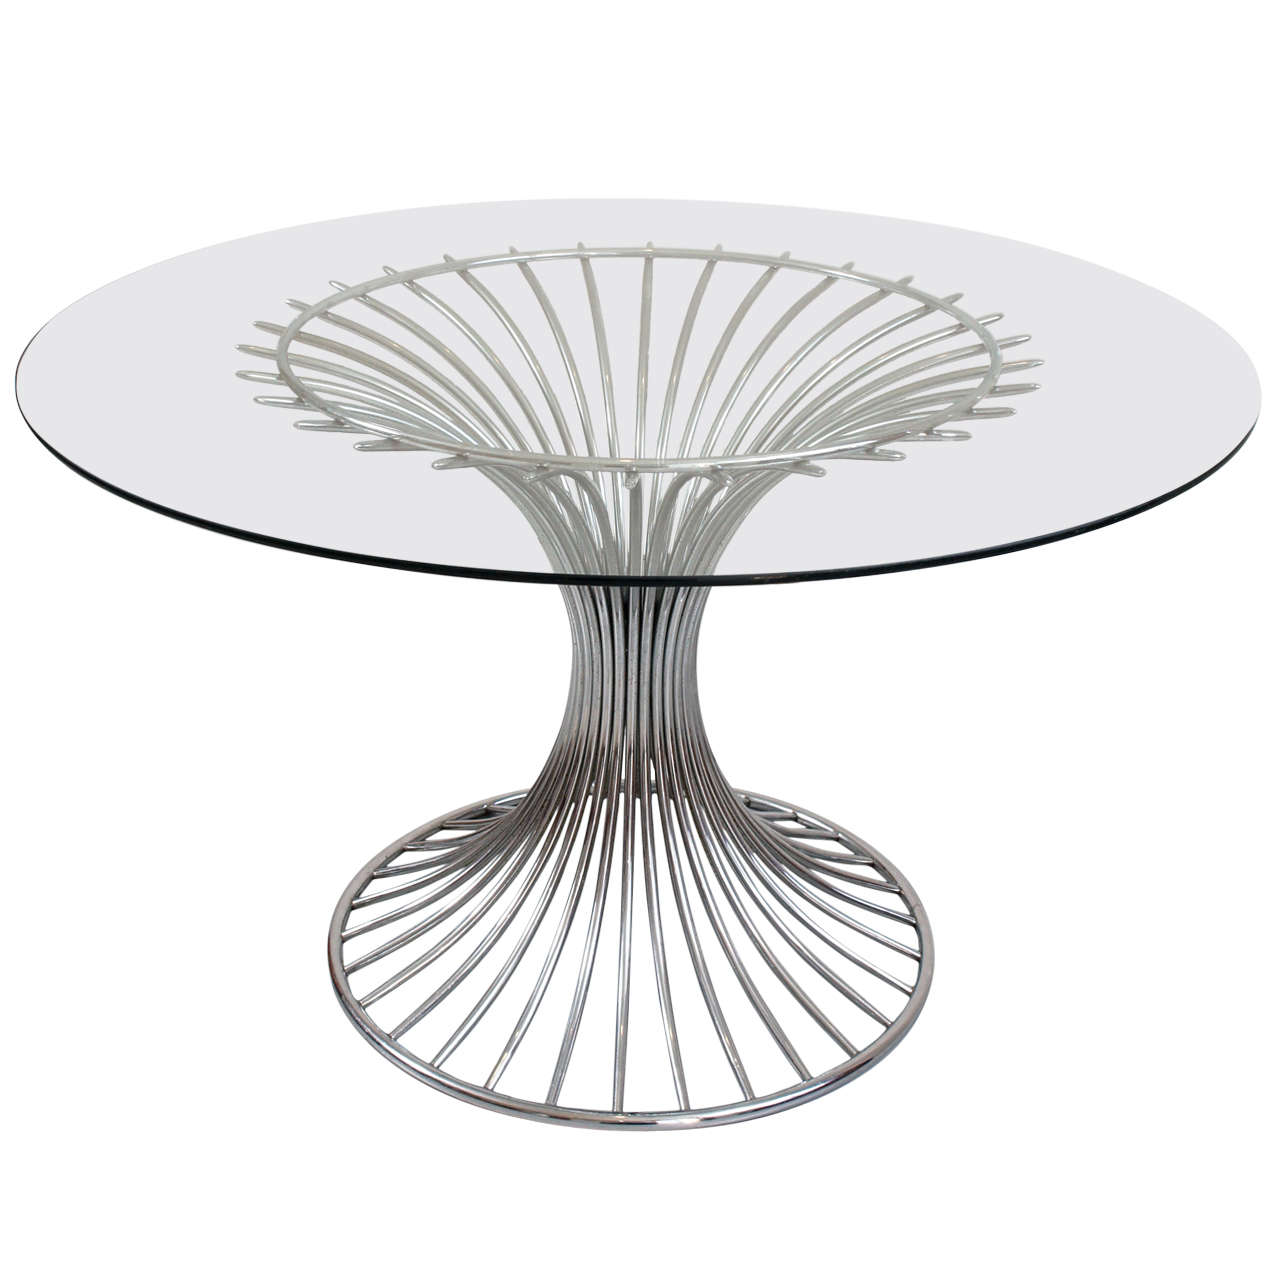 mid th century chrome and glass top round dining table at stdibs - mid th century chrome and glass top round dining table